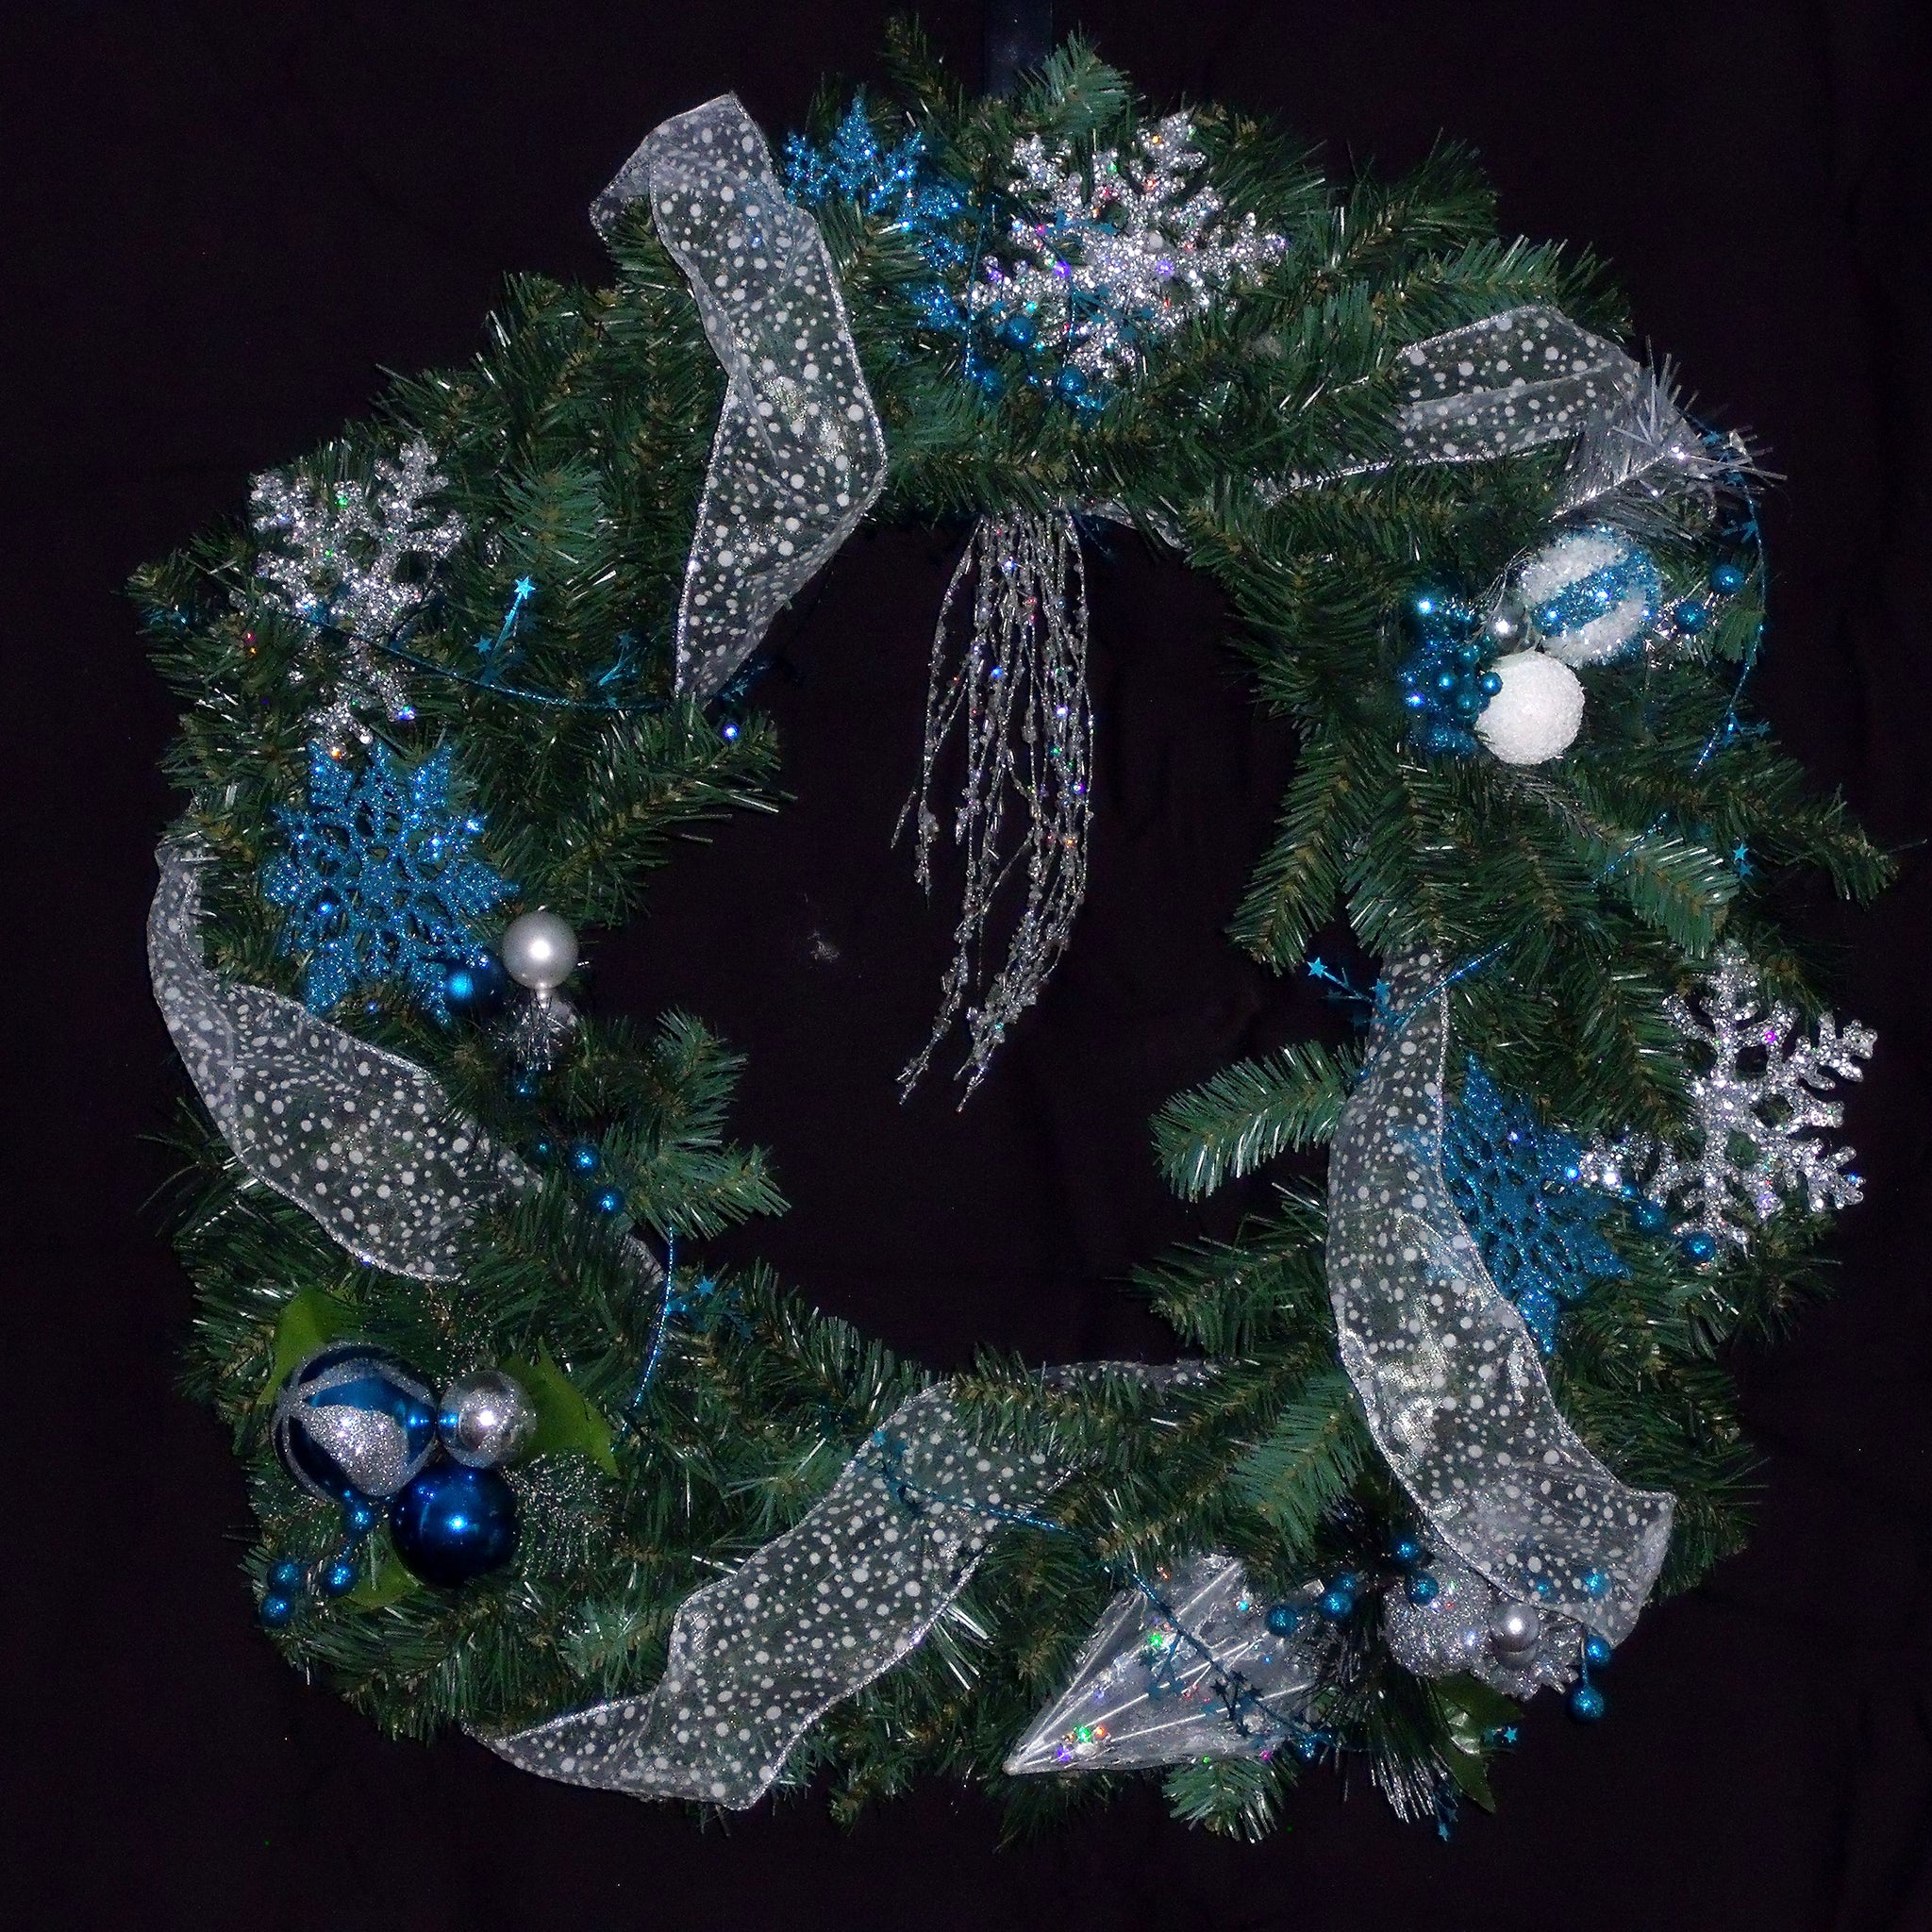 Snowflake Dreams Wreath from Creations by Caron